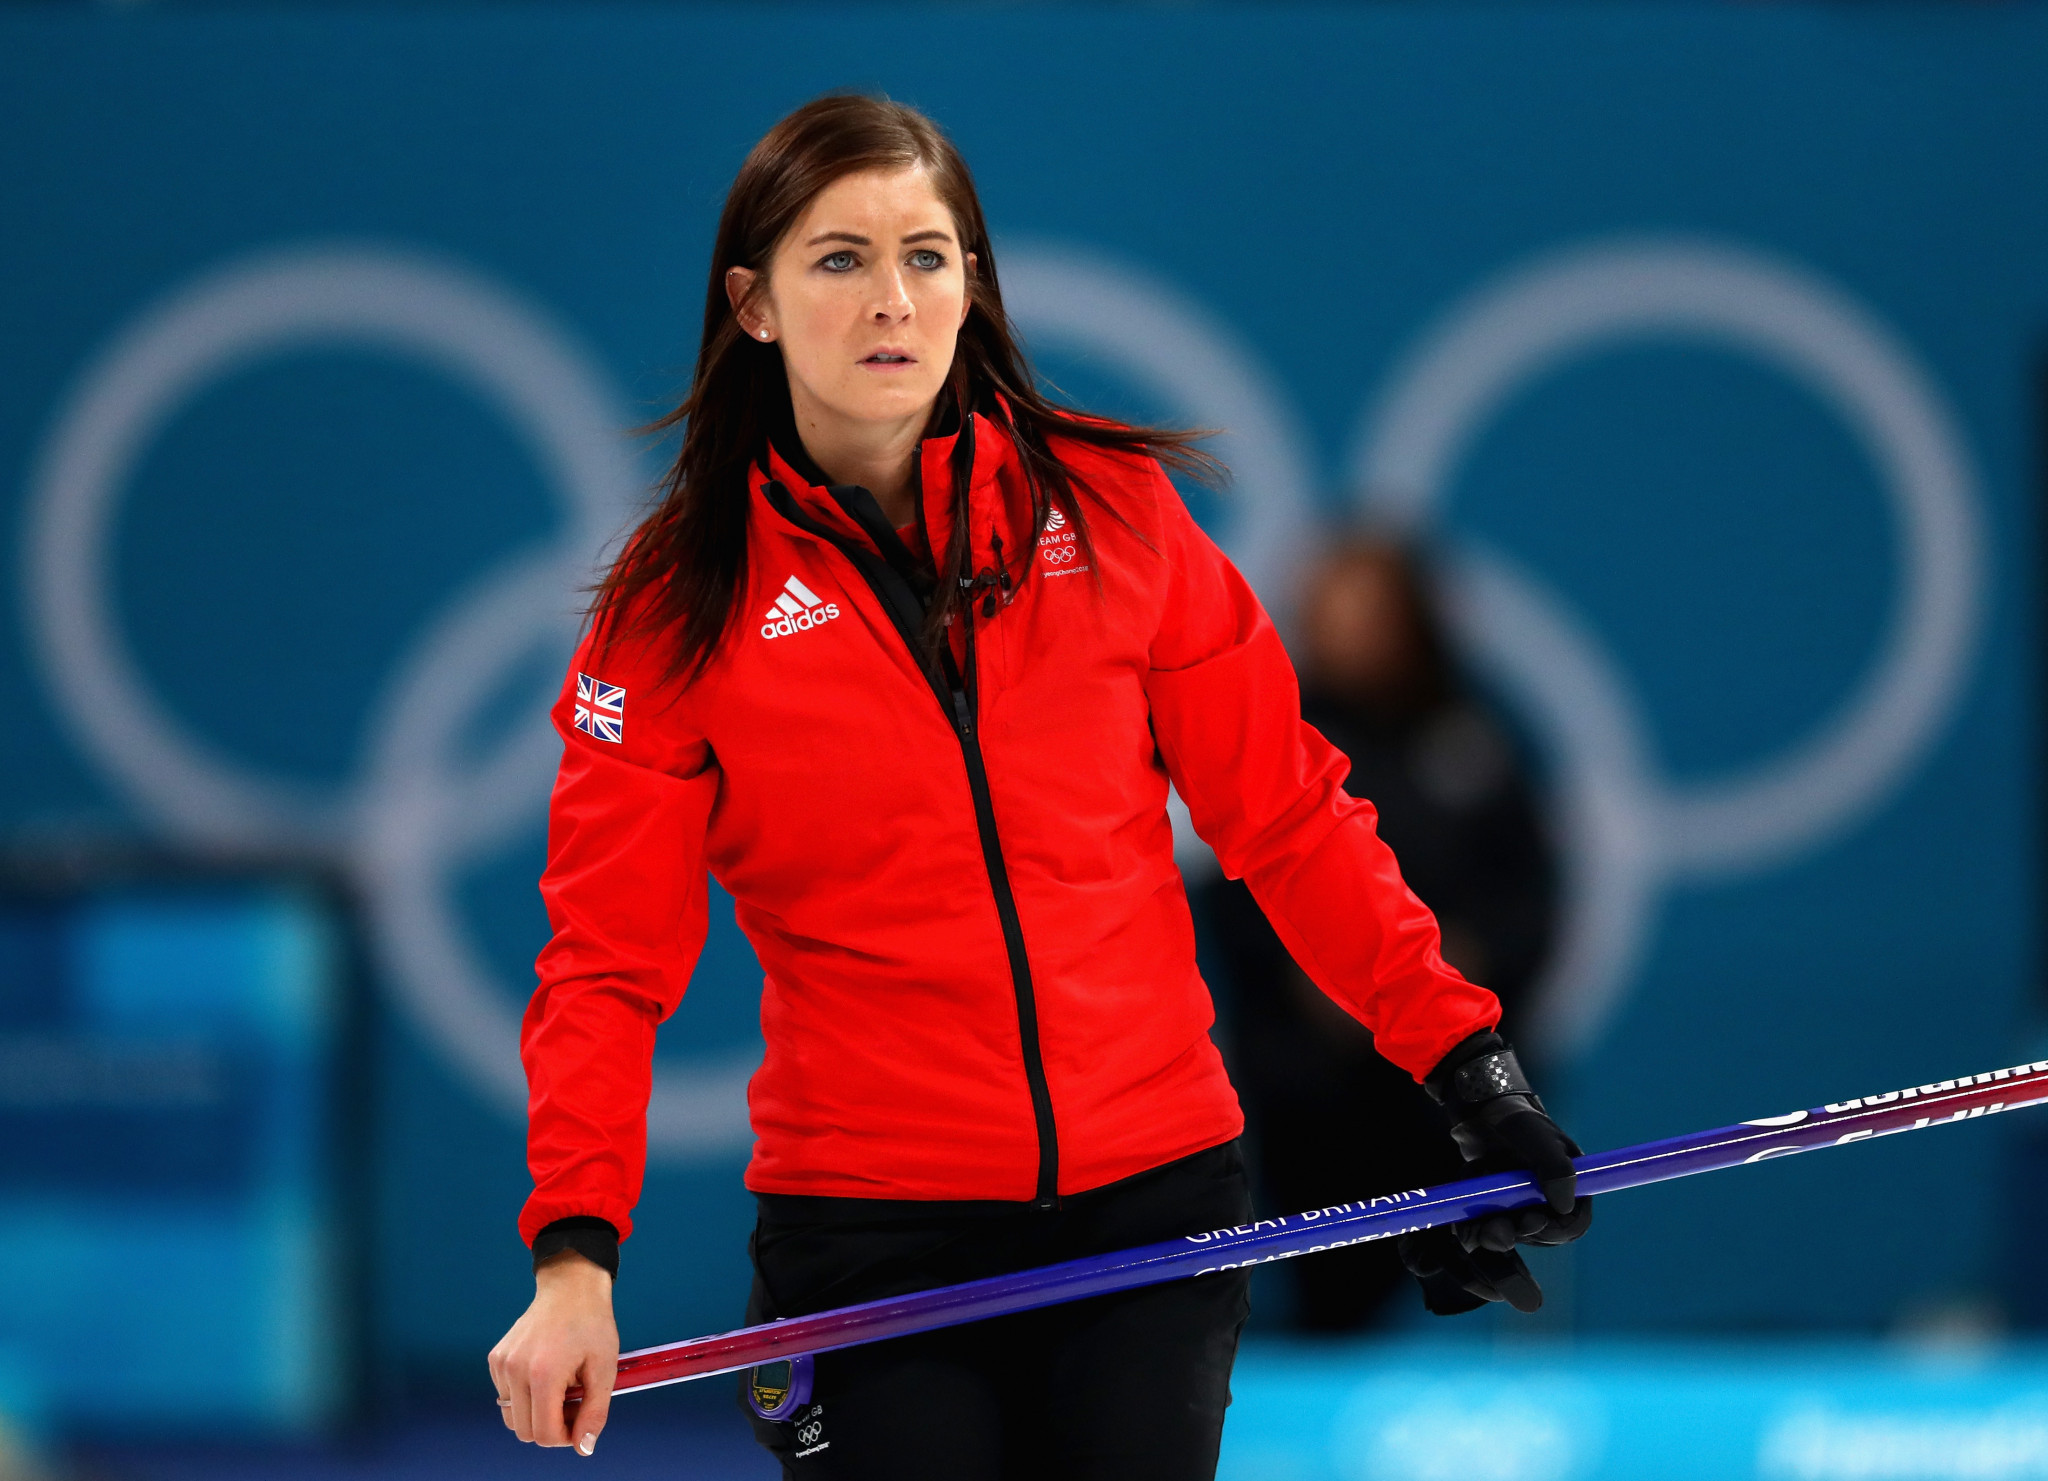 Eve Muirhead led Britain's women's team at last year's Winter Olympics in Pyeongchang ©Getty Images